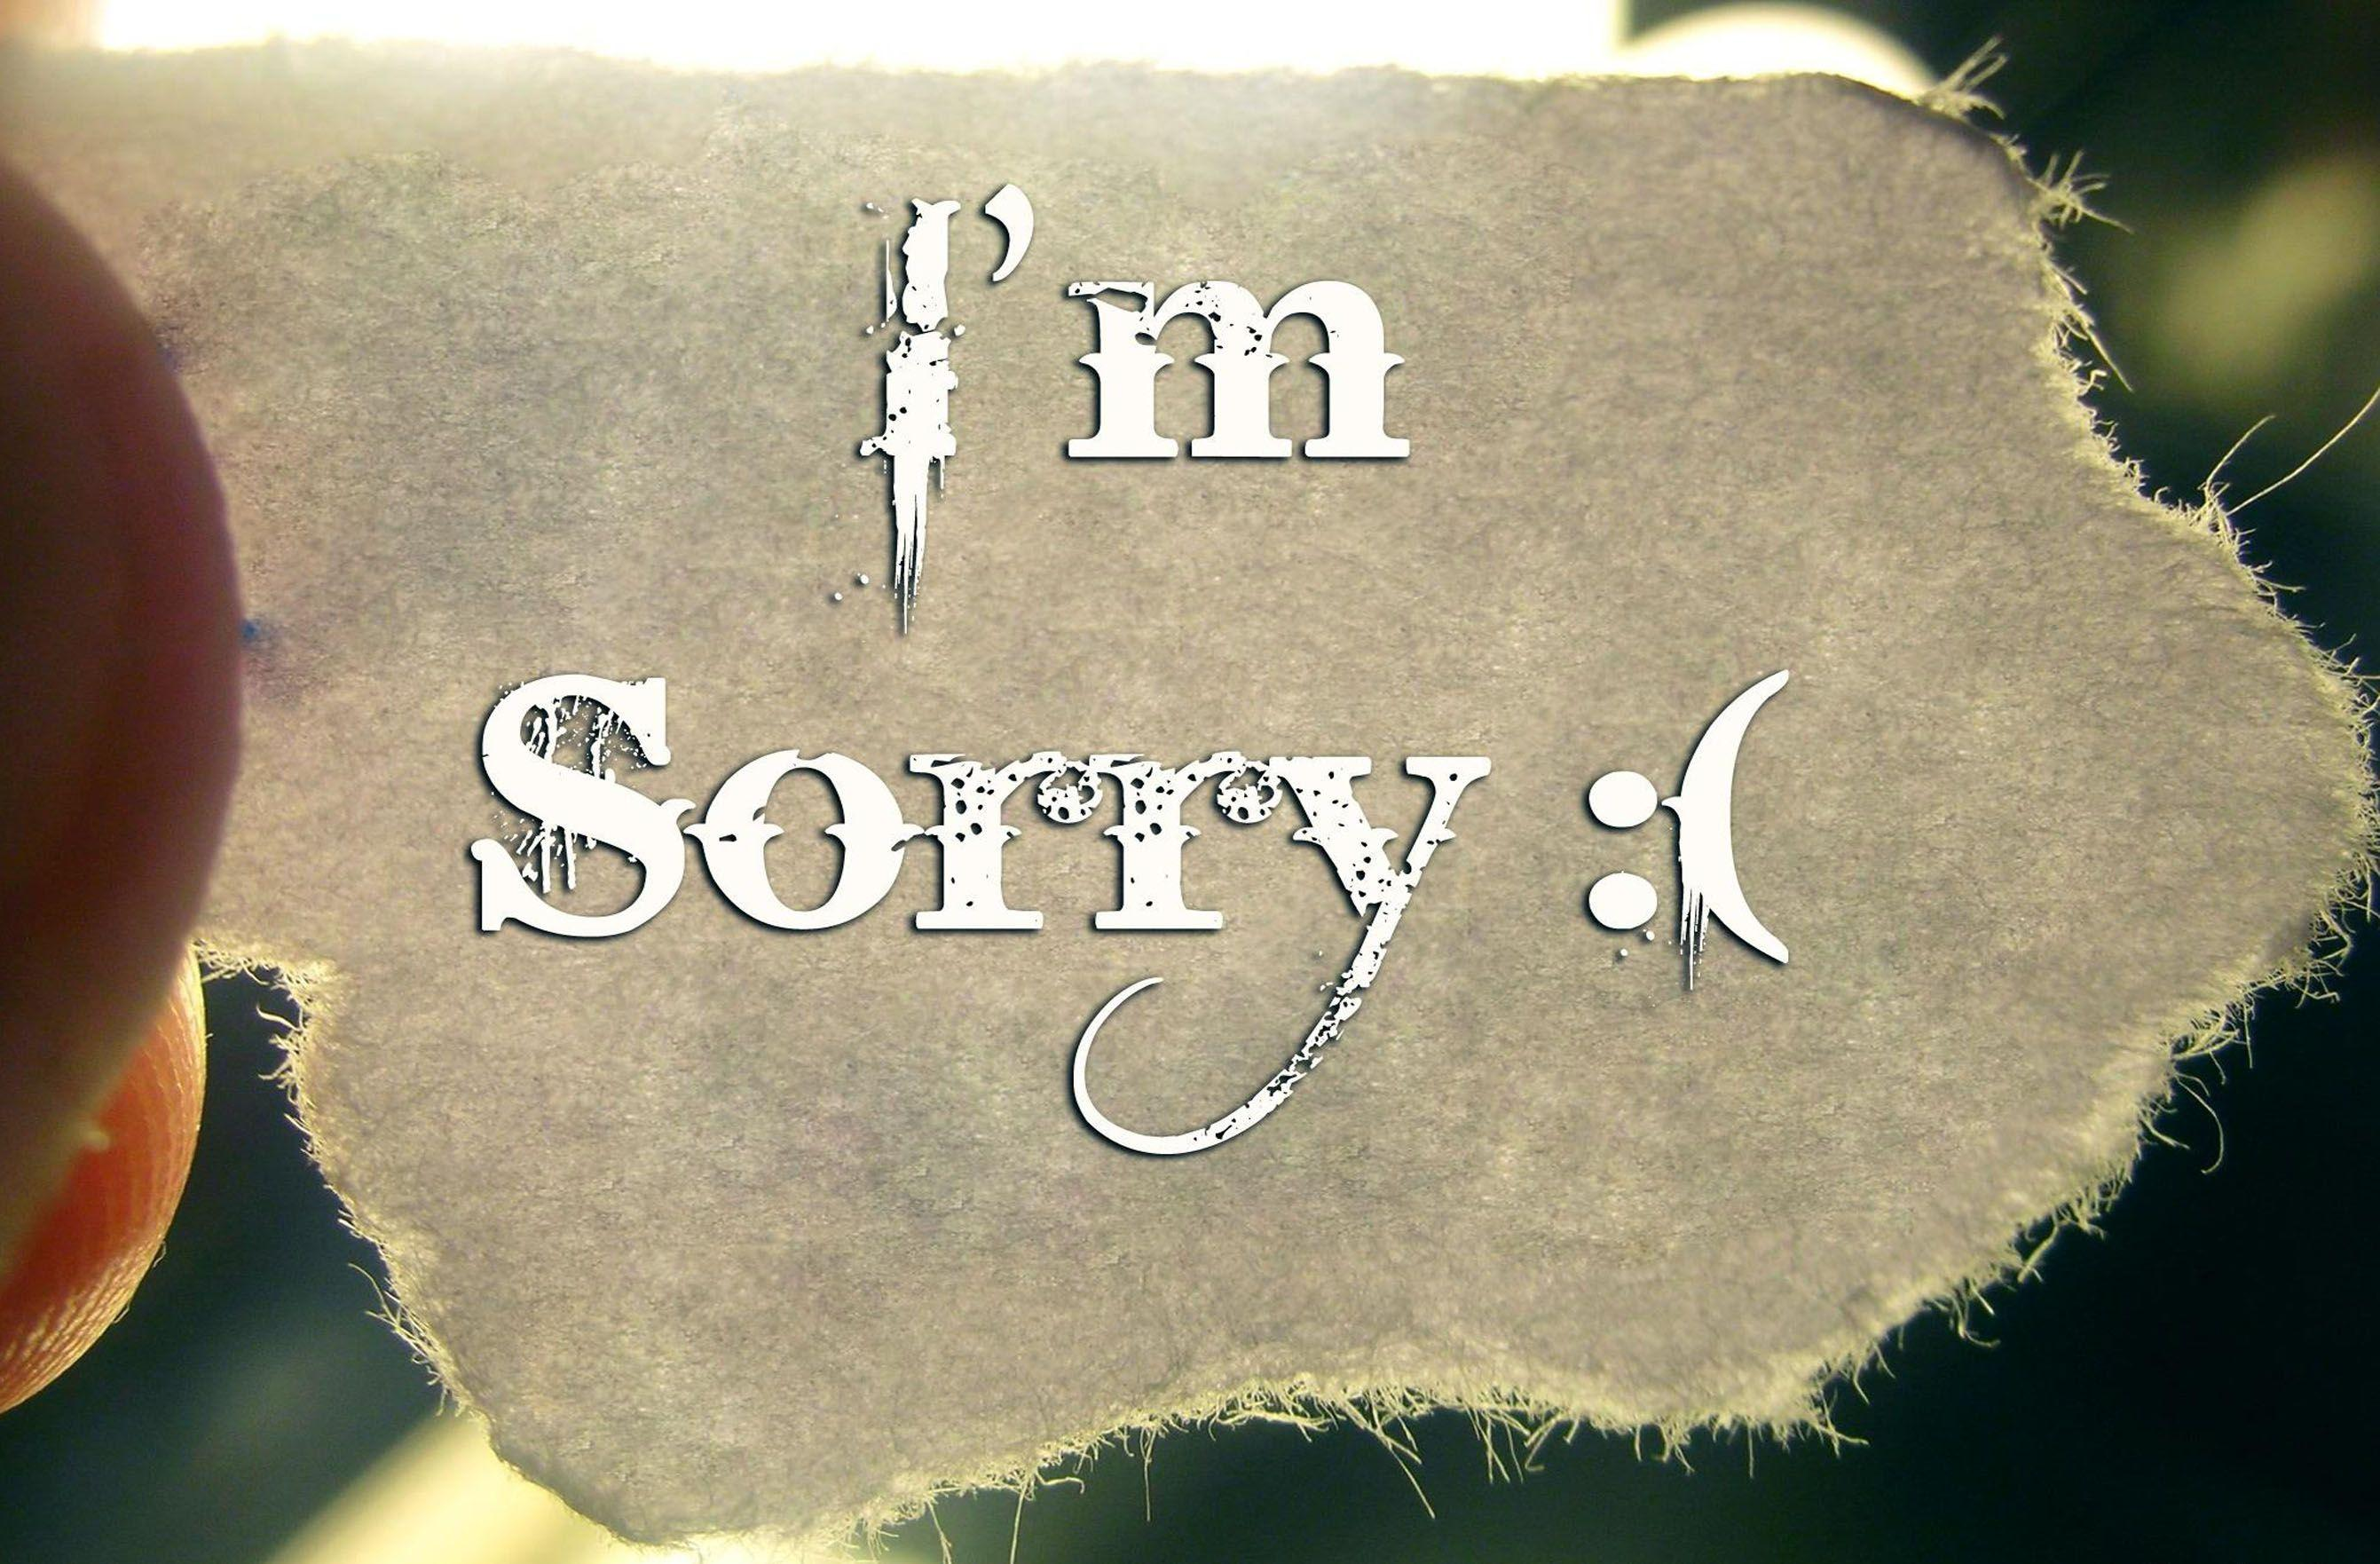 Sad Sorry Wallpaper - impremedia.net